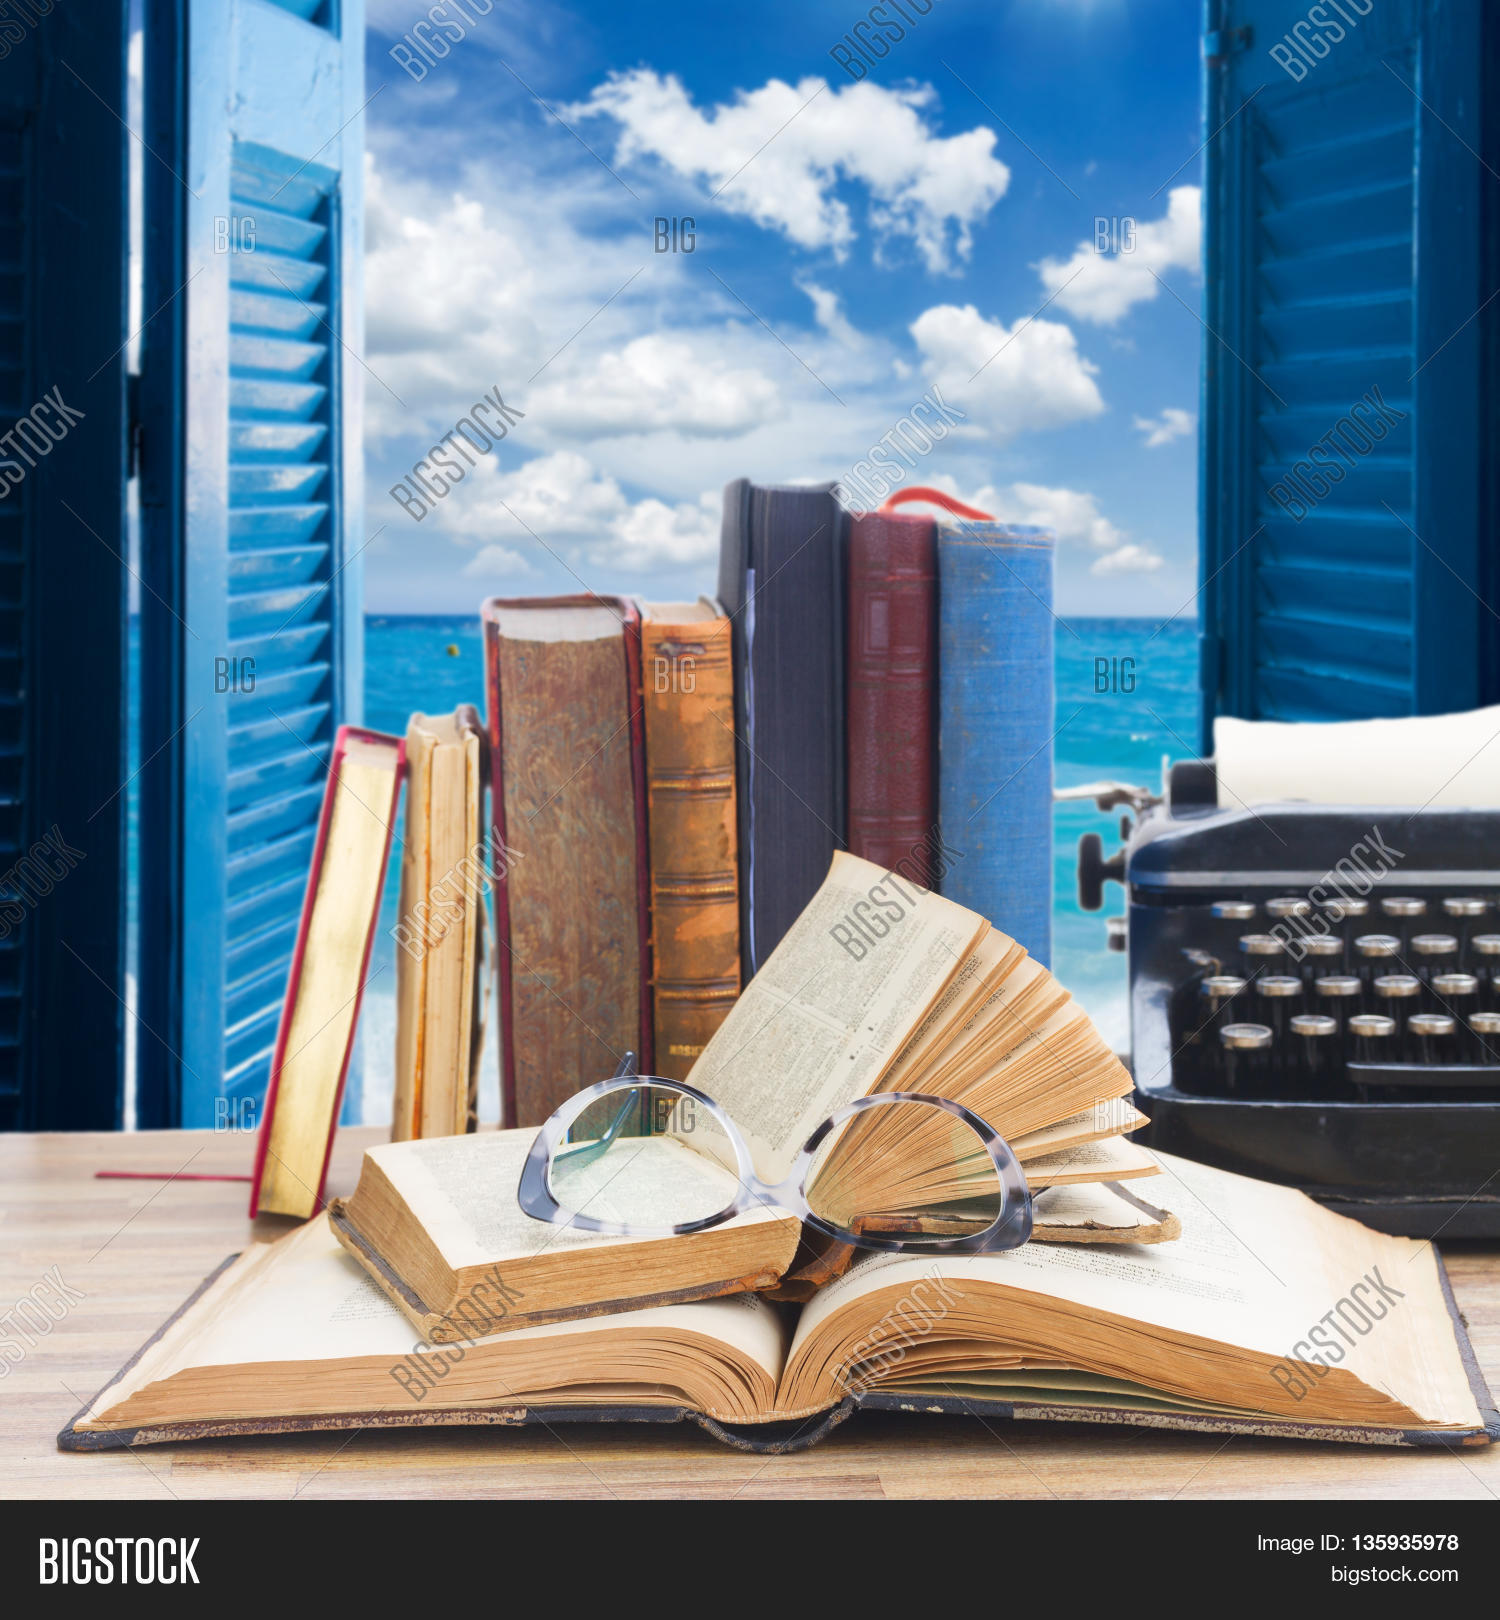 Old Books, Glasses Image & Photo (Free Trial) | Bigstock